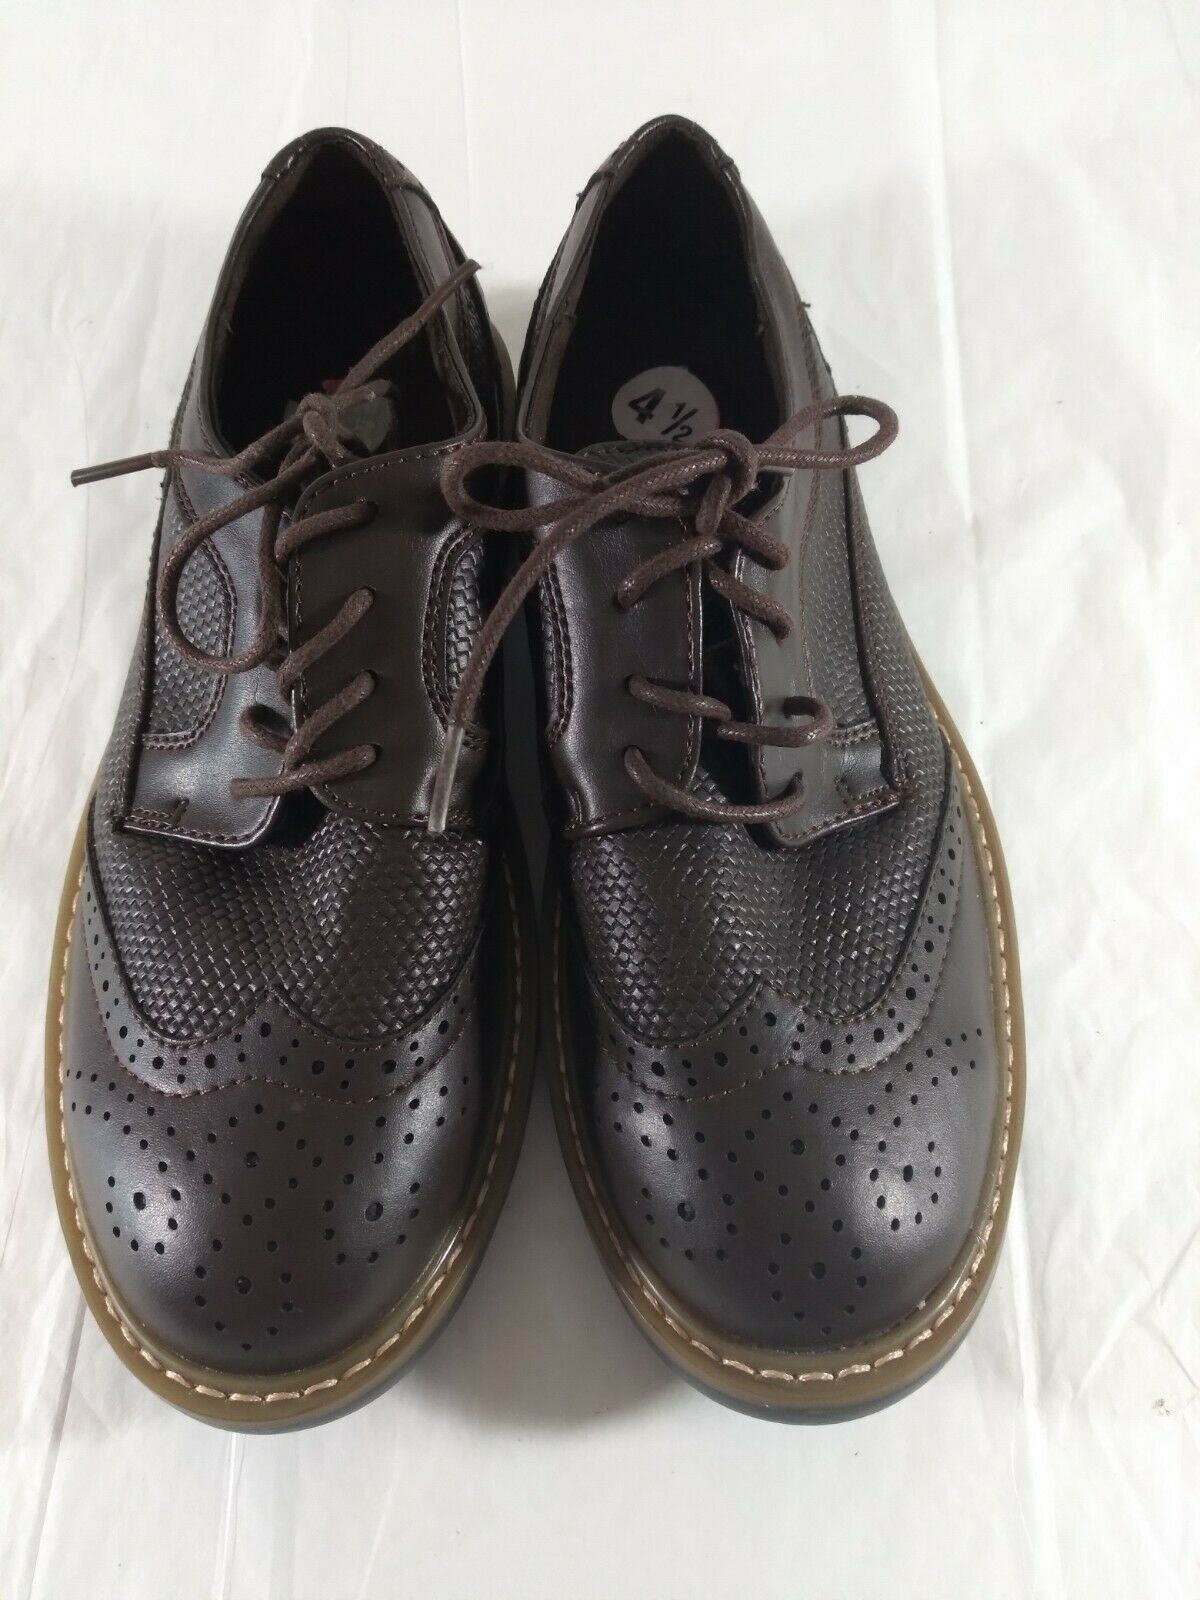 Kenneth Cole Reaction Shoes Brown Lace Up Sz 4.5